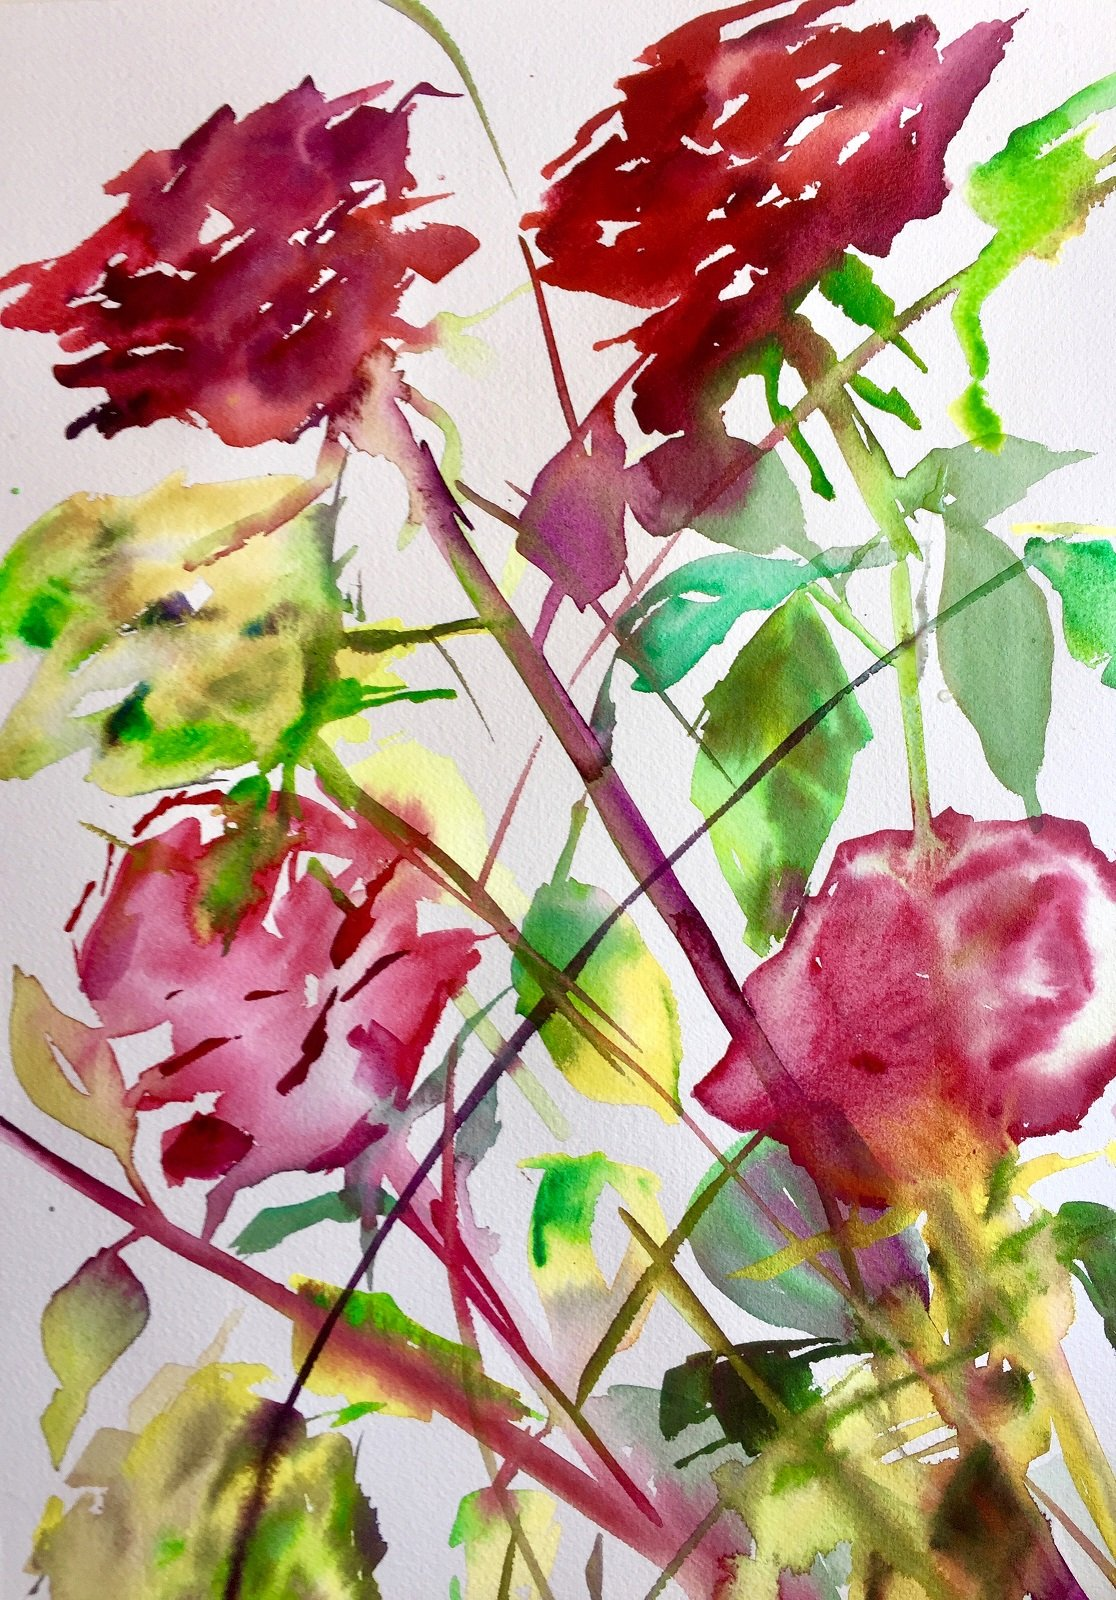 Winter Roses 3 Water colour 56 x 31 cm 300gms Arches